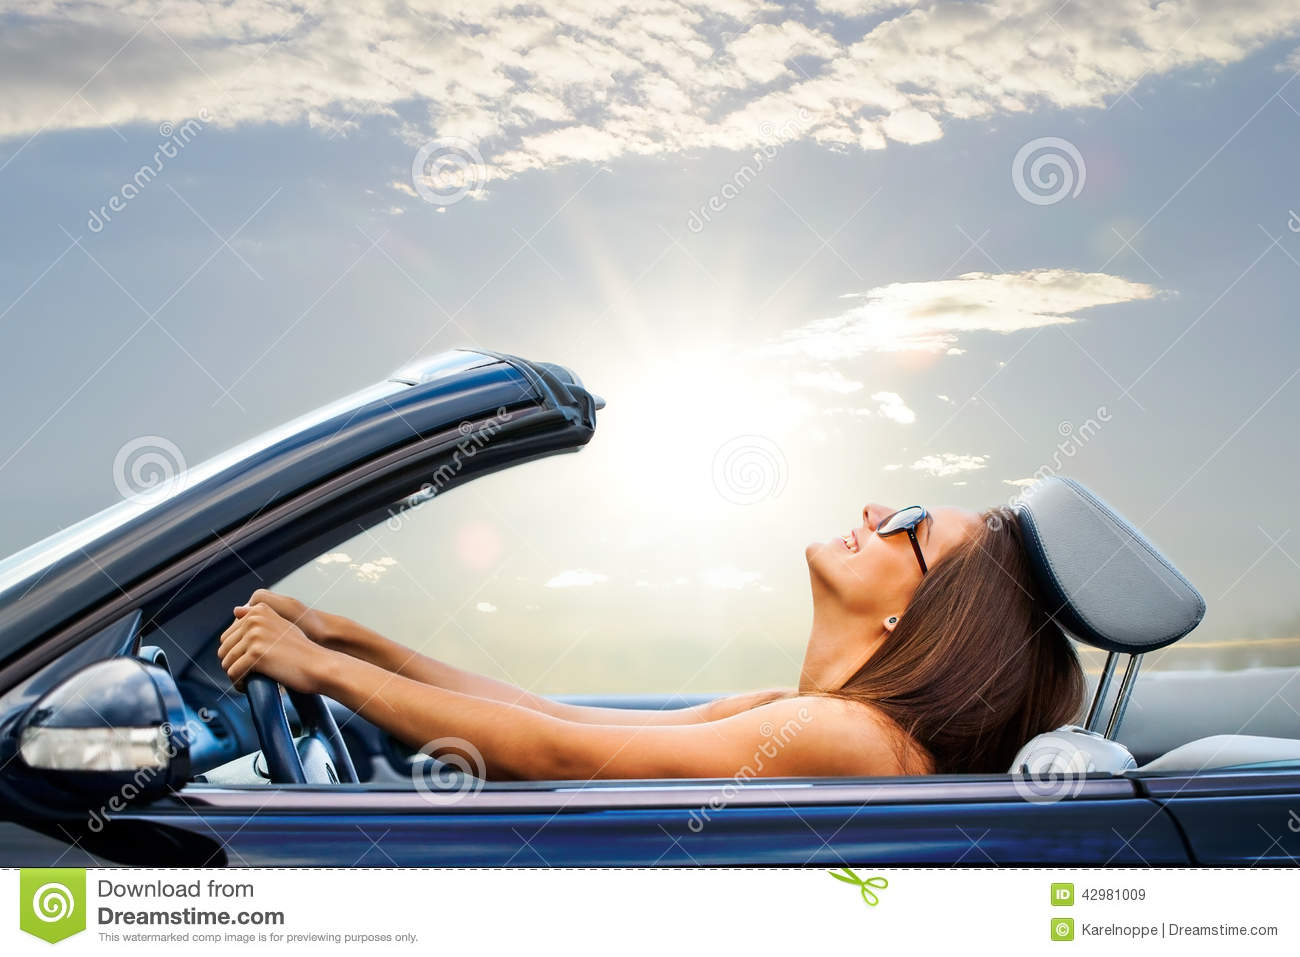 Accept. opinion, Video naked girl driving convertible cars thought